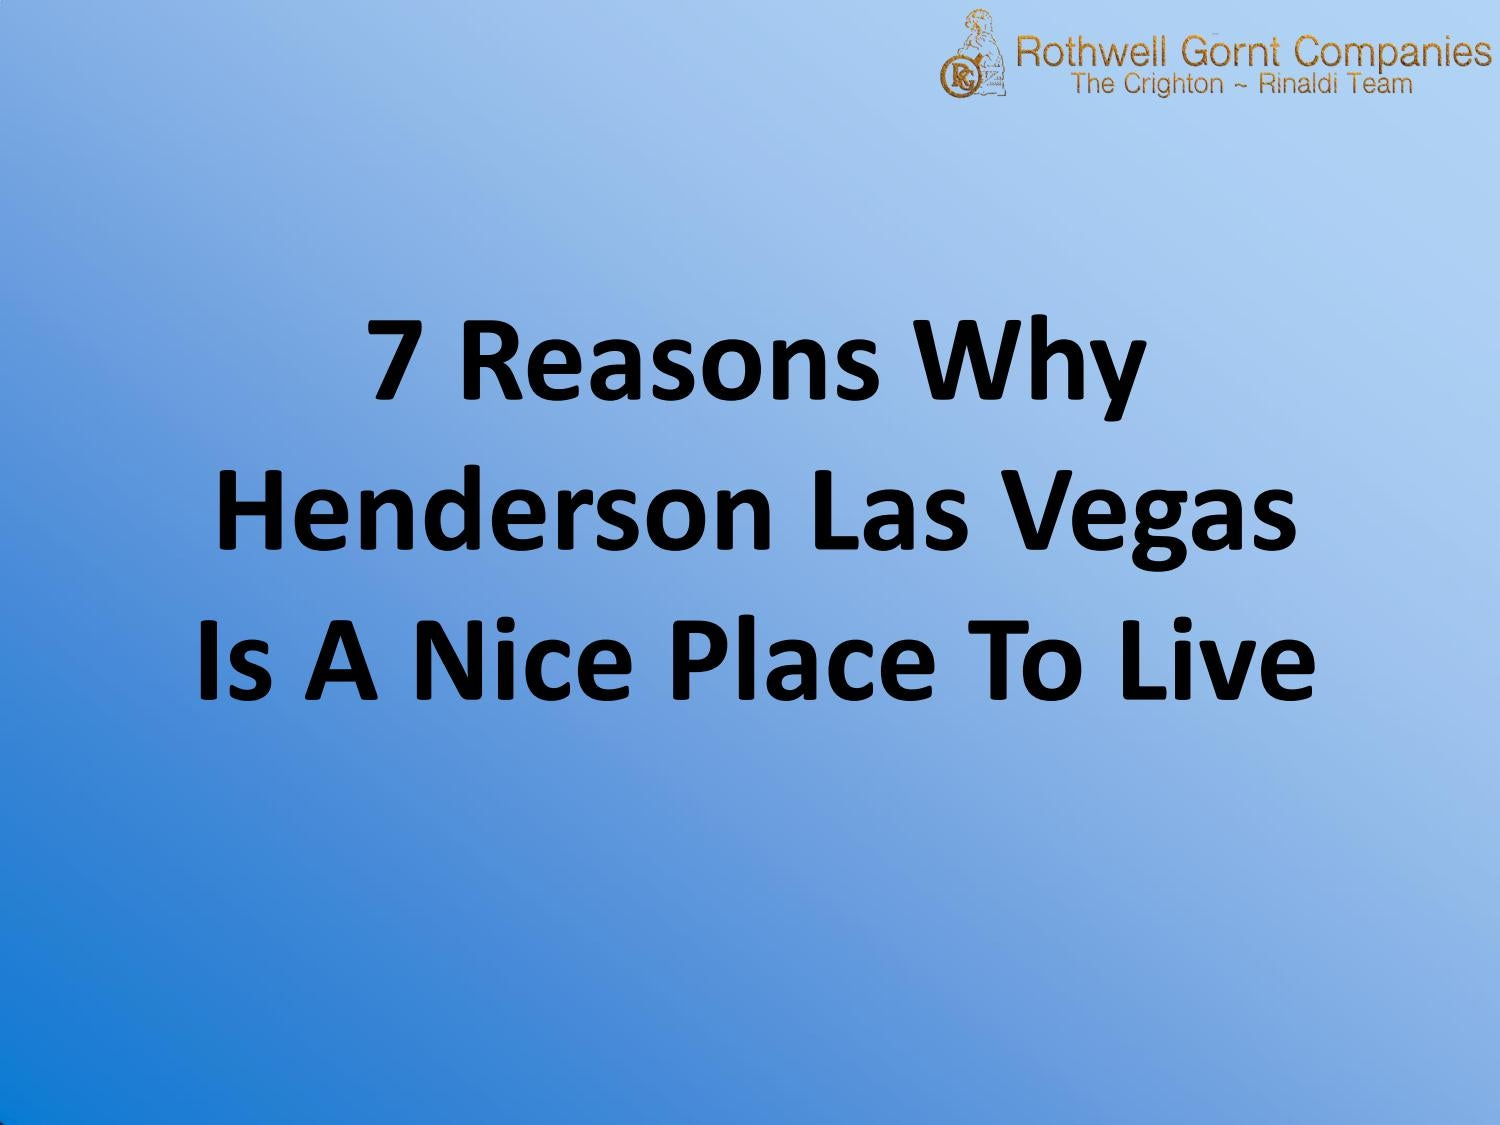 7 Reasons Why Henderson Las Vegas Is A Nice Place To Live